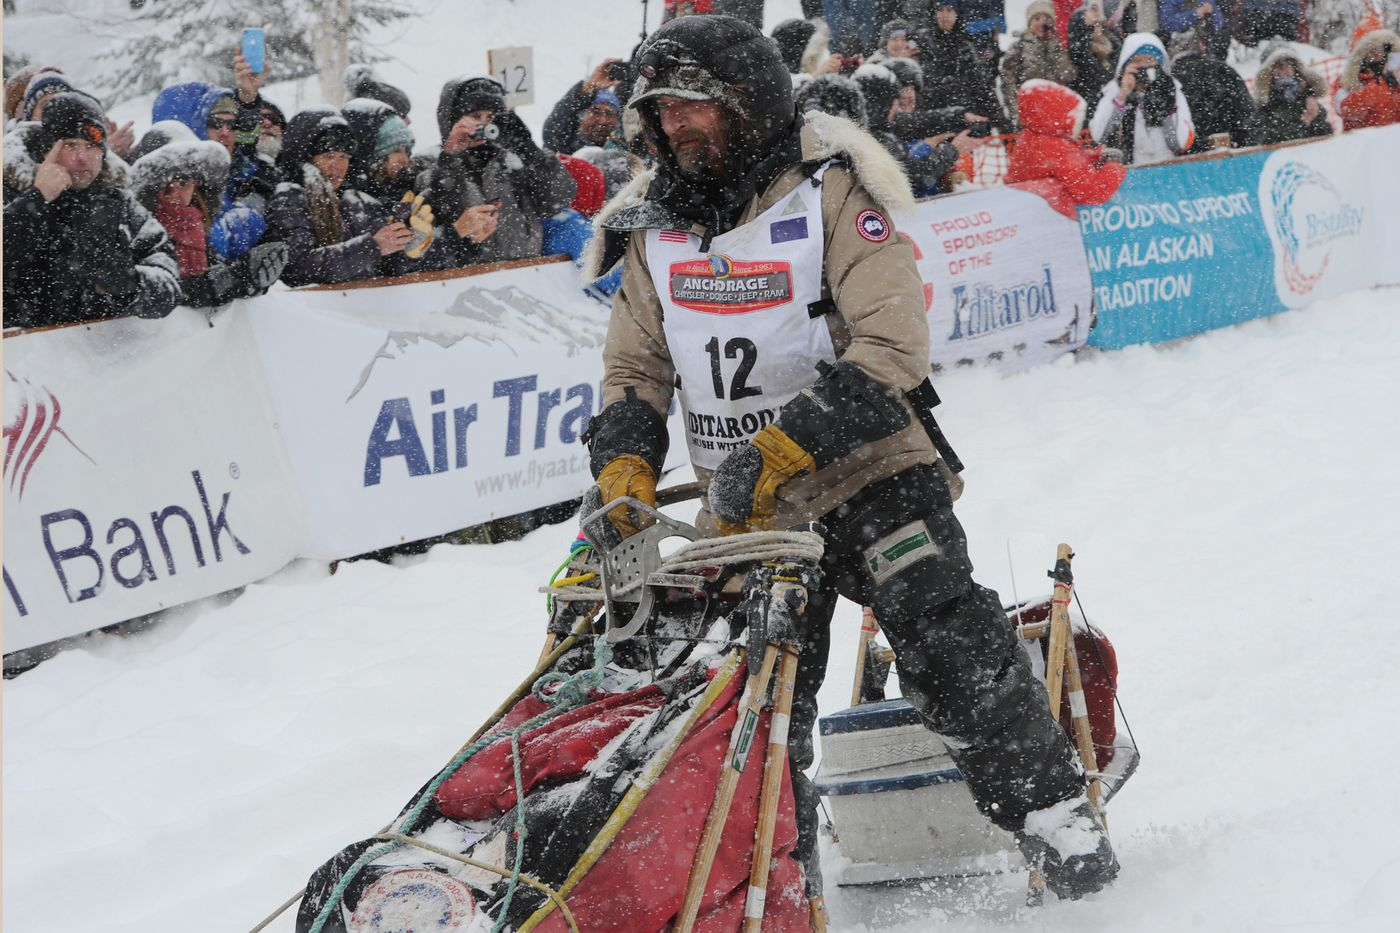 Four-time Iditarod champion Lance Mackey of Fairbanks drives his sled during the restart of the Iditarod in Willow. (Bill Roth / ADN)